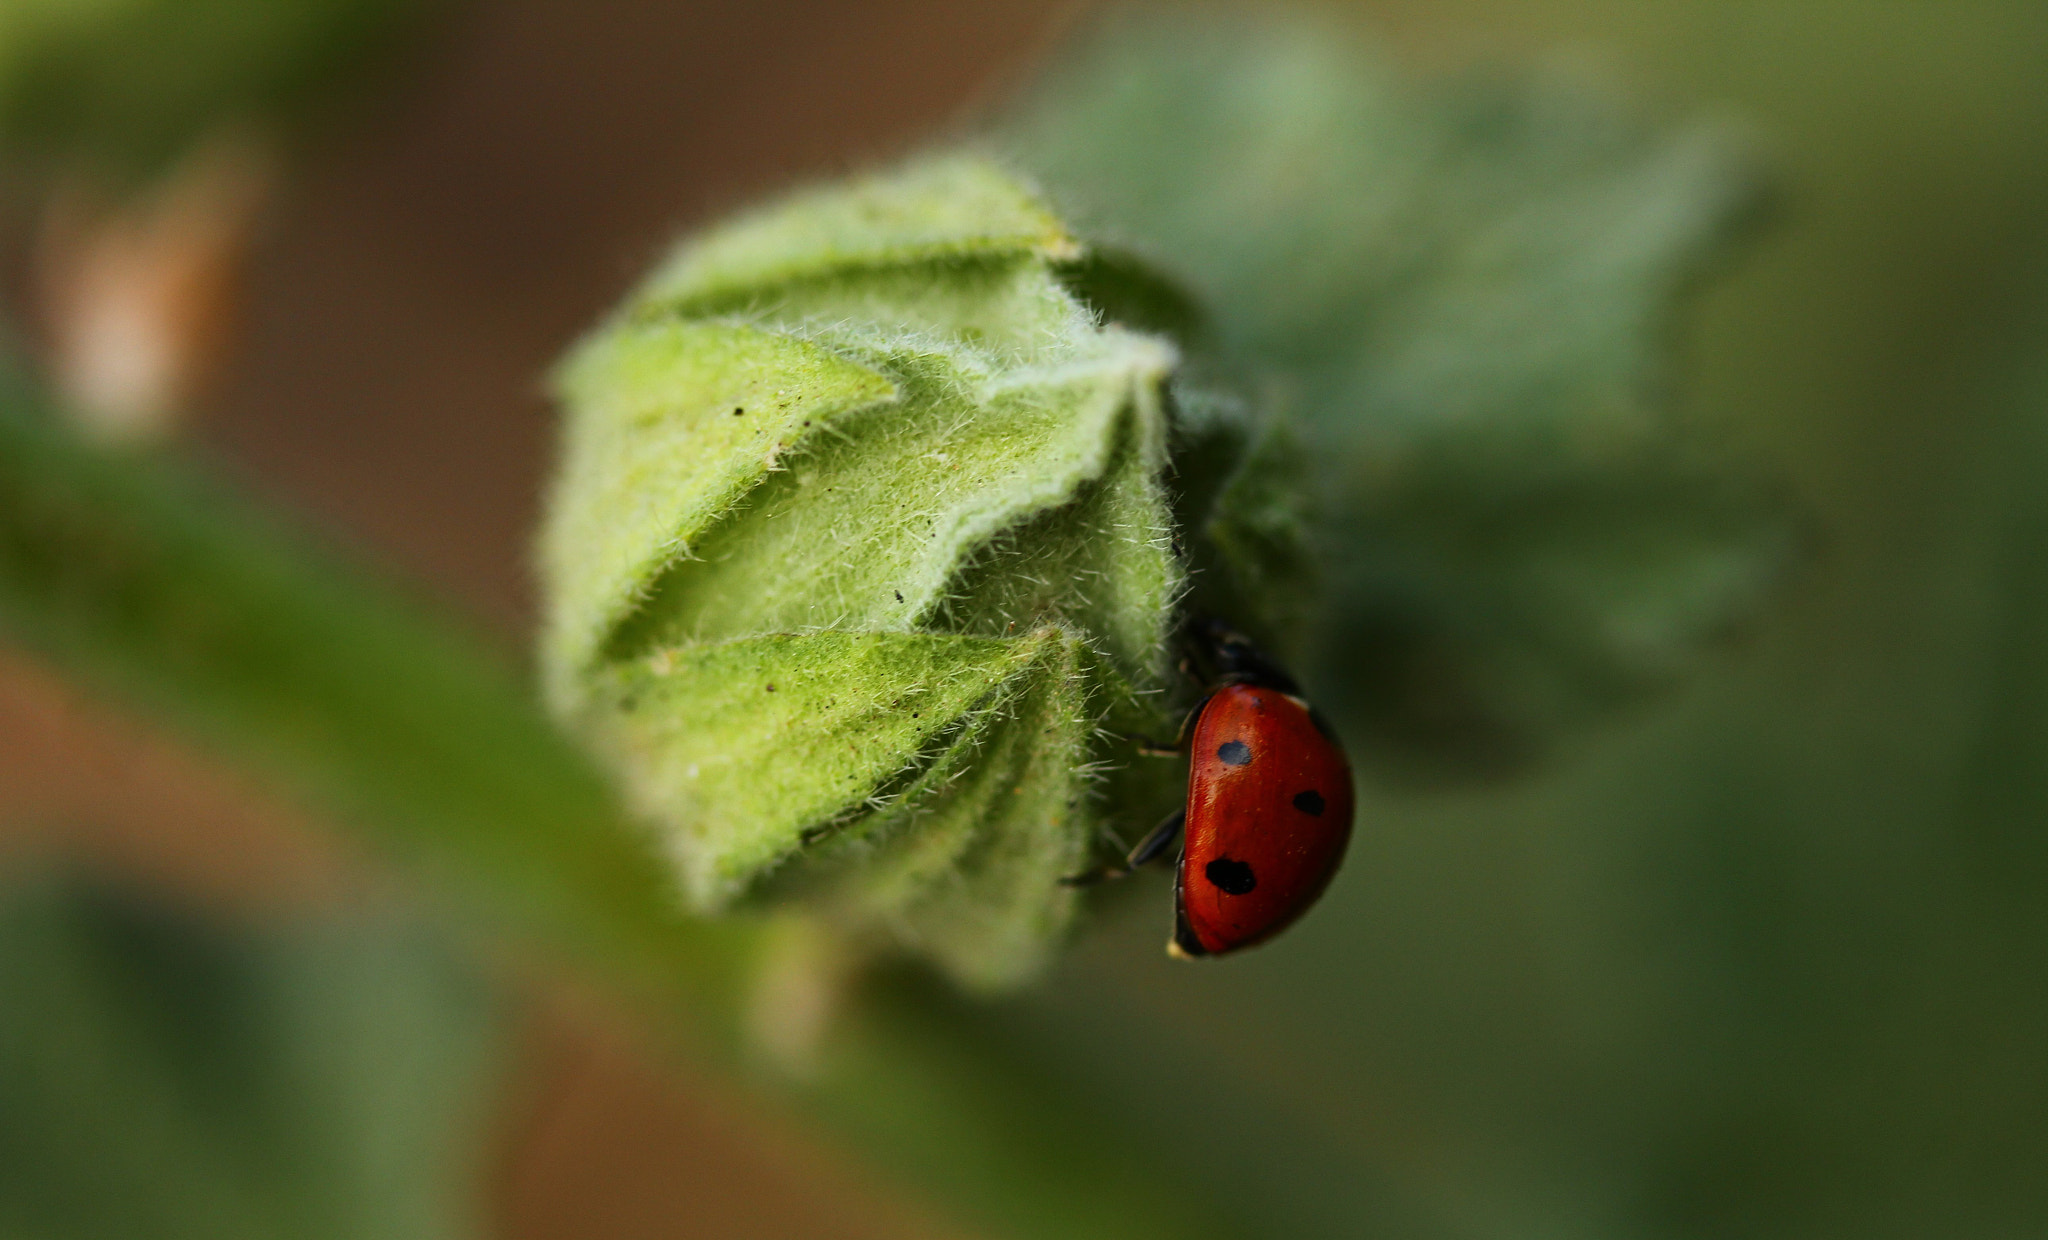 Photograph Ladybug by Johnny Gomez on 500px